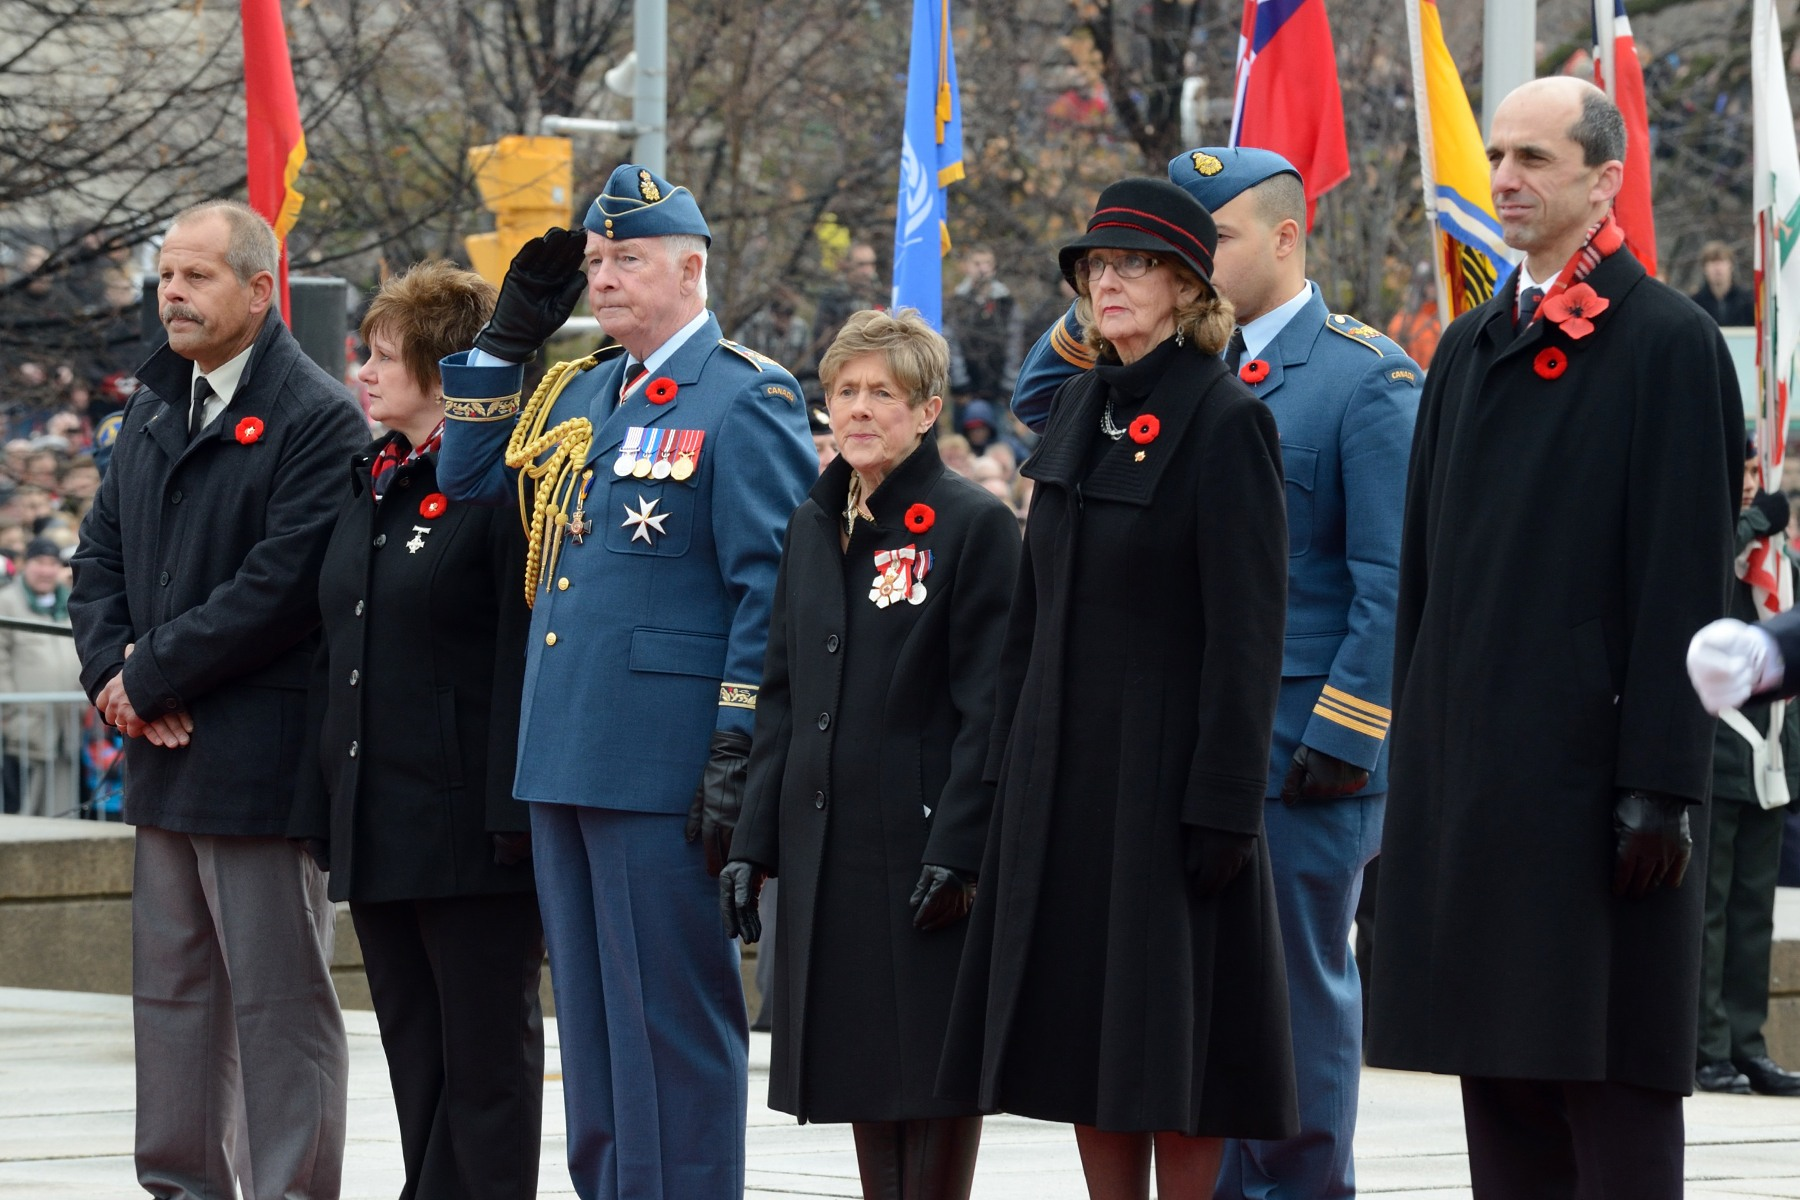 Their Excellencies the Right Honourable David Johnston, Governor General and Commander-in-Chief of Canada, and Mrs. Sharon Johnston attended the National Remembrance Day Ceremony at the National War Memorial in Ottawa.